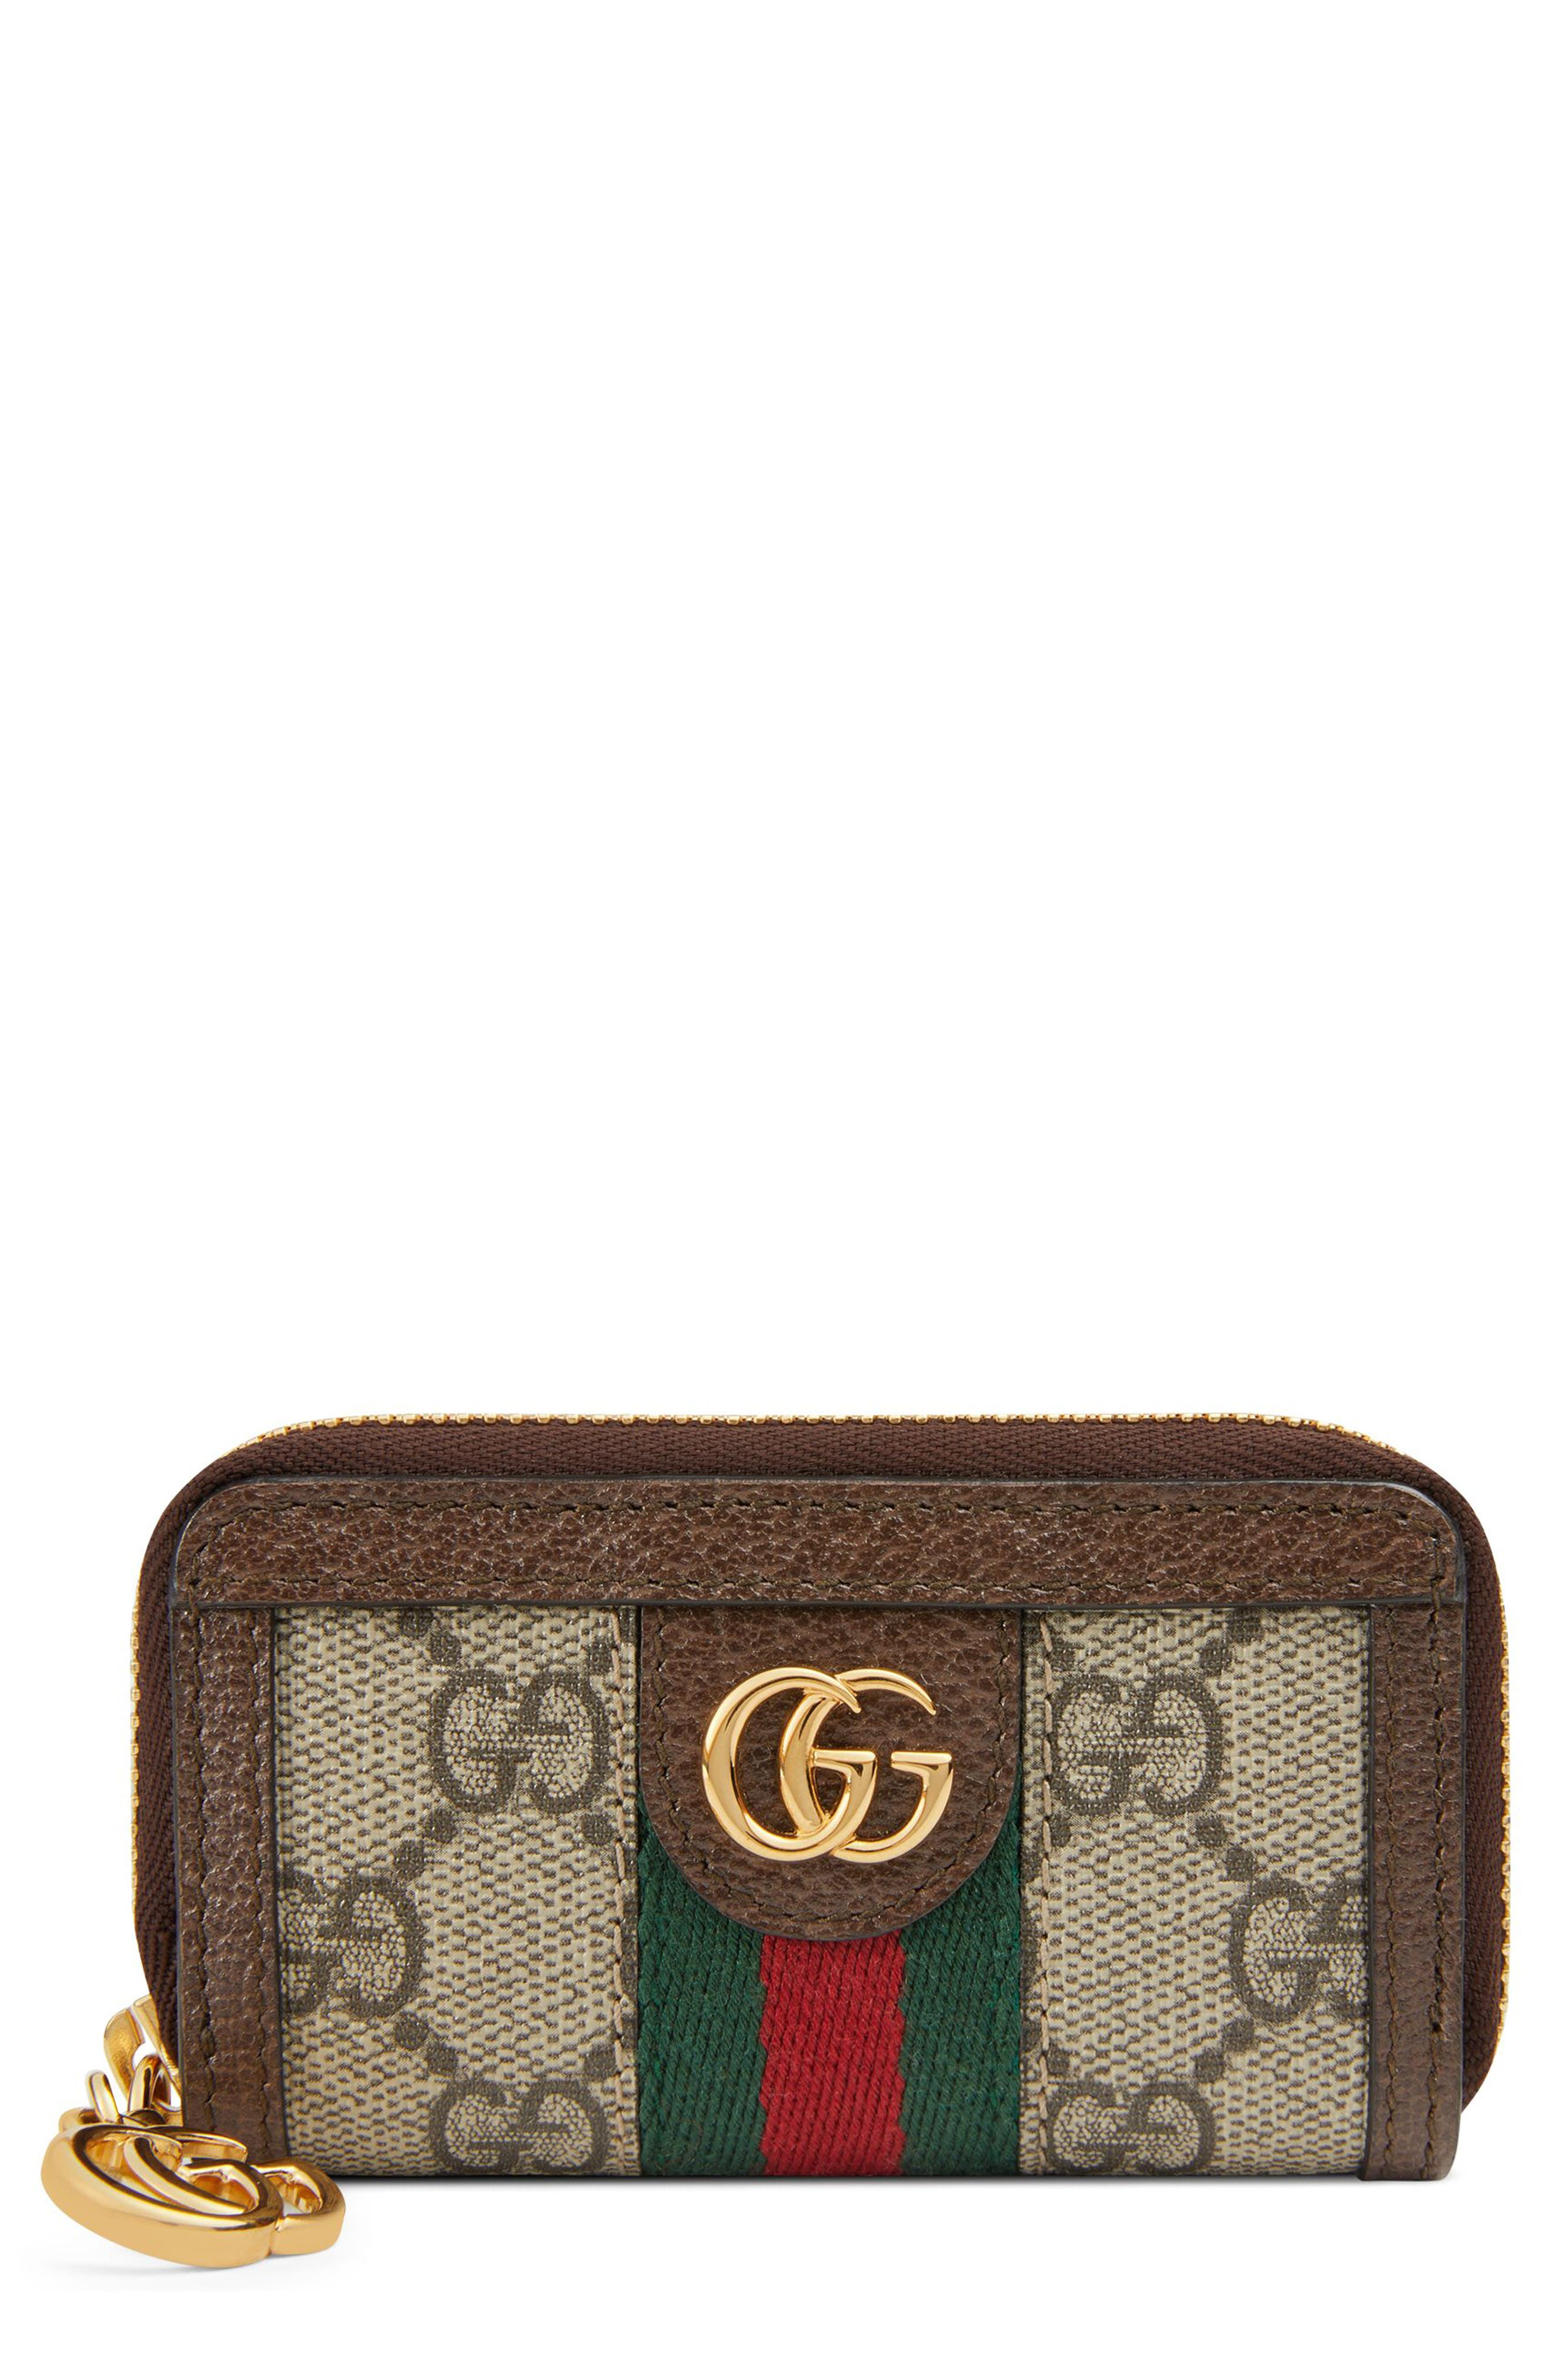 GUCCI, Ophidia GG Supreme Zip-Around Key Case, Main thumbnail 1, color, BEIGE EBONY/ ACERO/ VERT RED